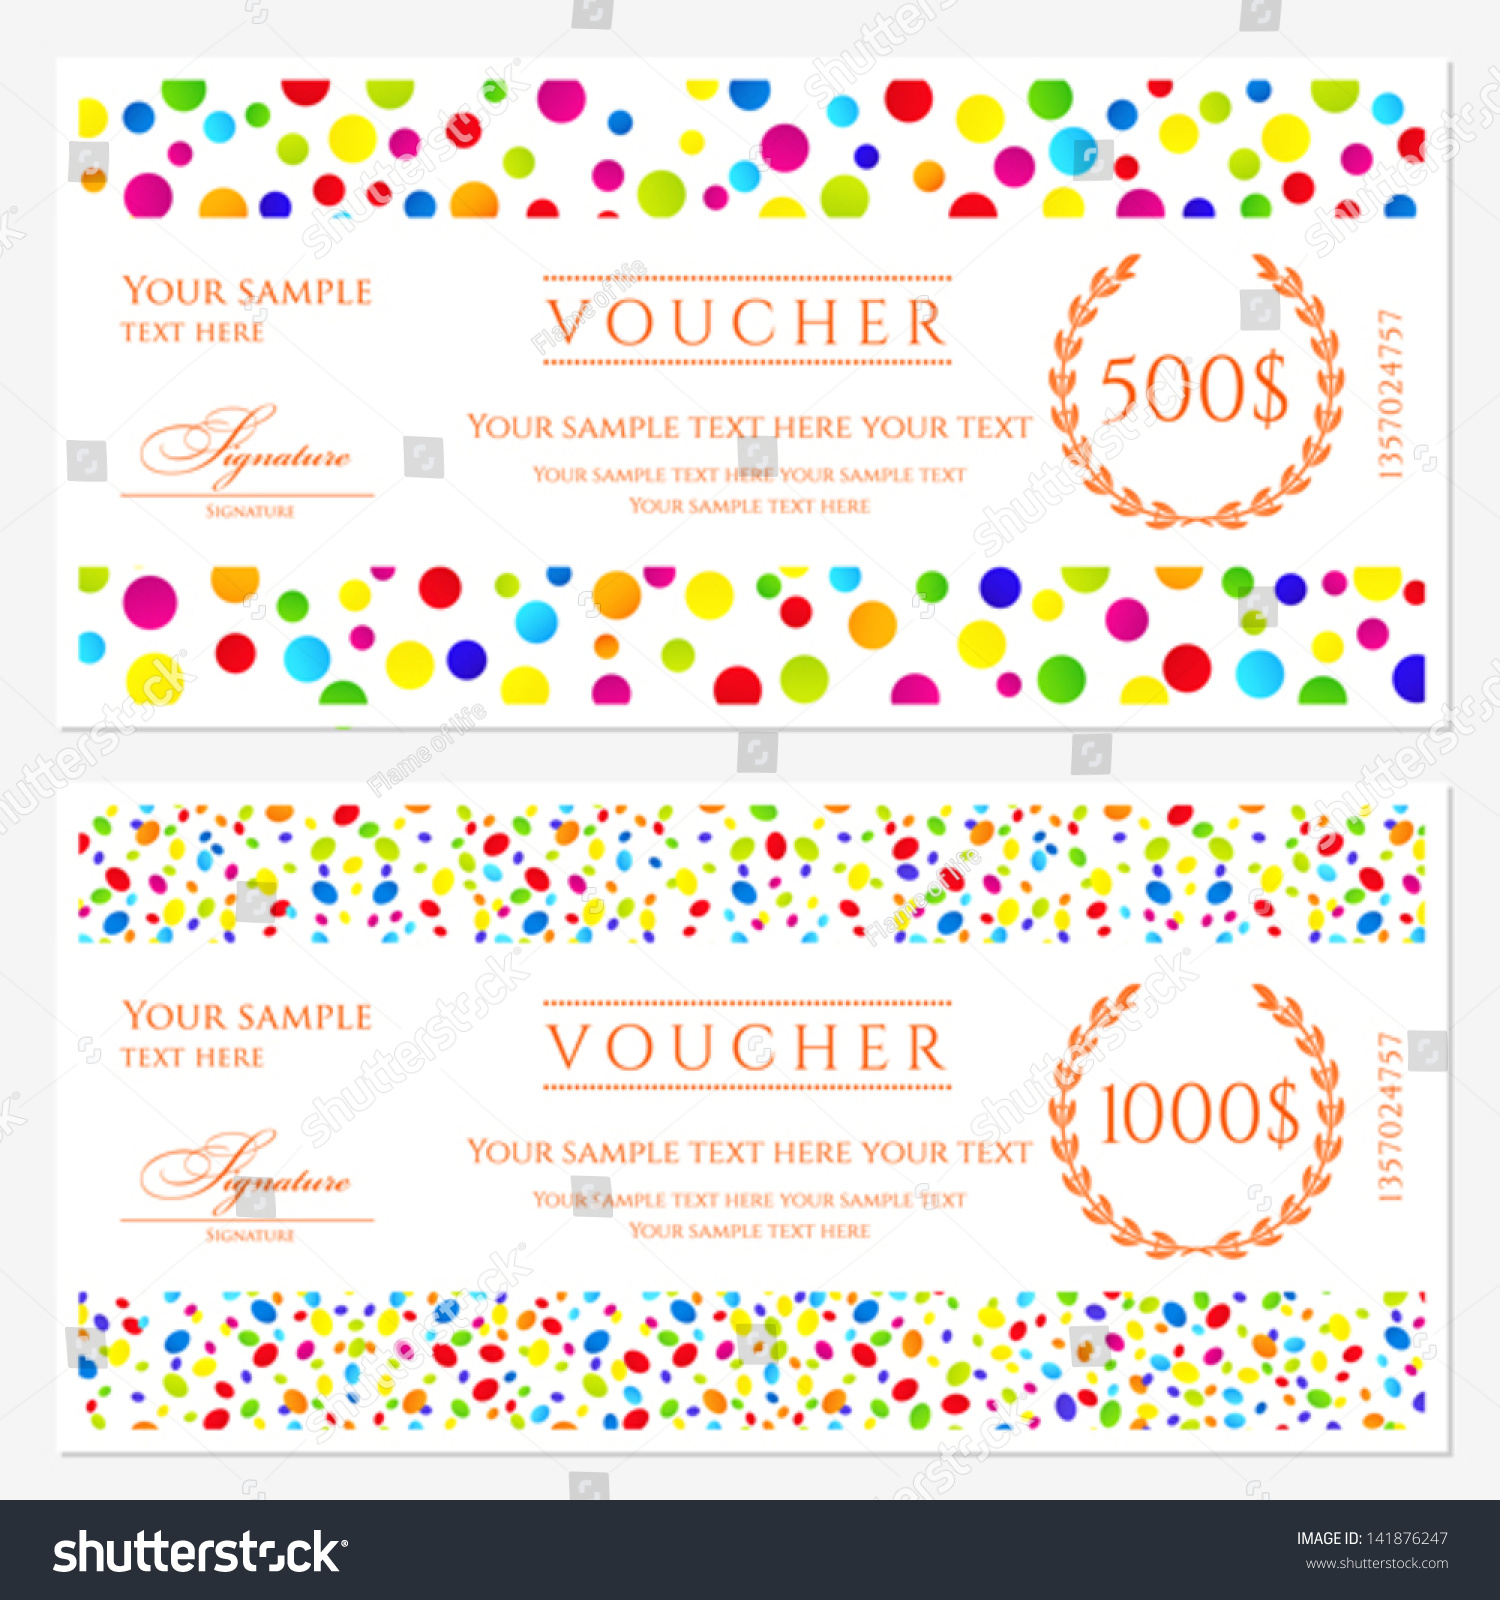 cheque voucher template - voucher gift certificate template colorful bright stock